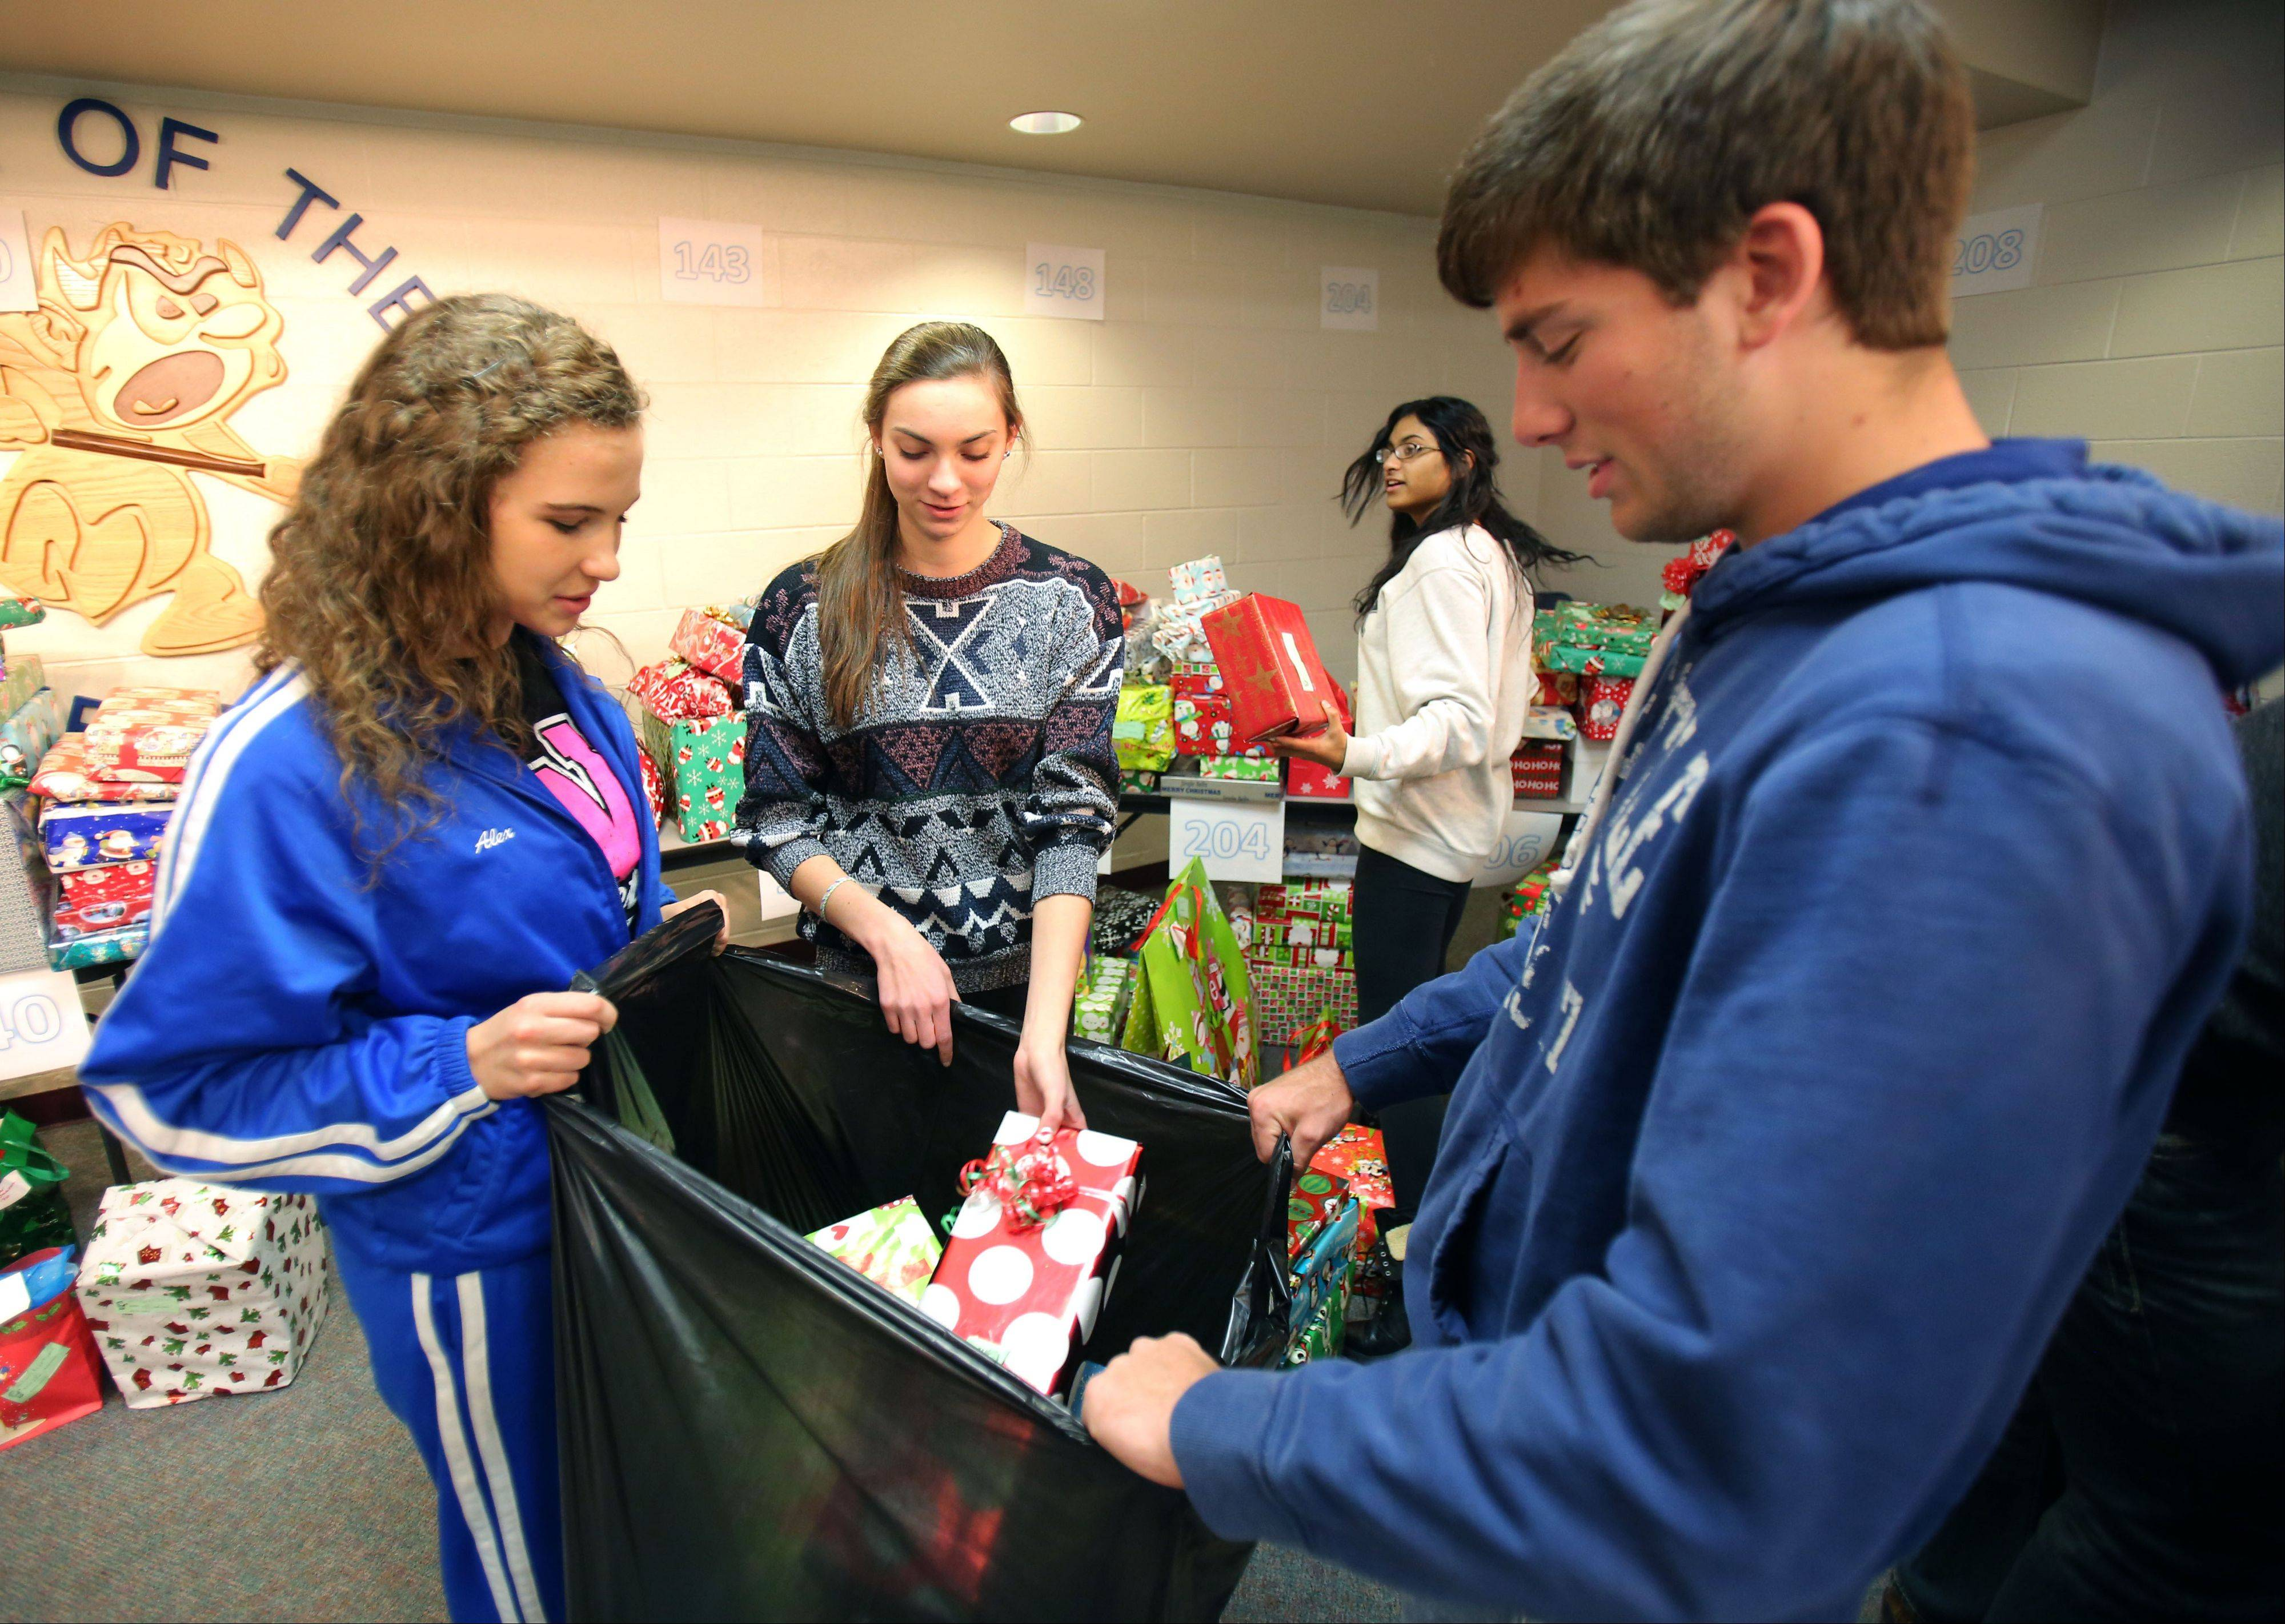 Warren Township High School seniors Alex Landry, left, Anna Baio, Connor Tangney and Christine Rajan sort wrapped Christmas presents into bags for their Letters for Santa Program. The presents will be delivered to the Reilly School in Chicago.